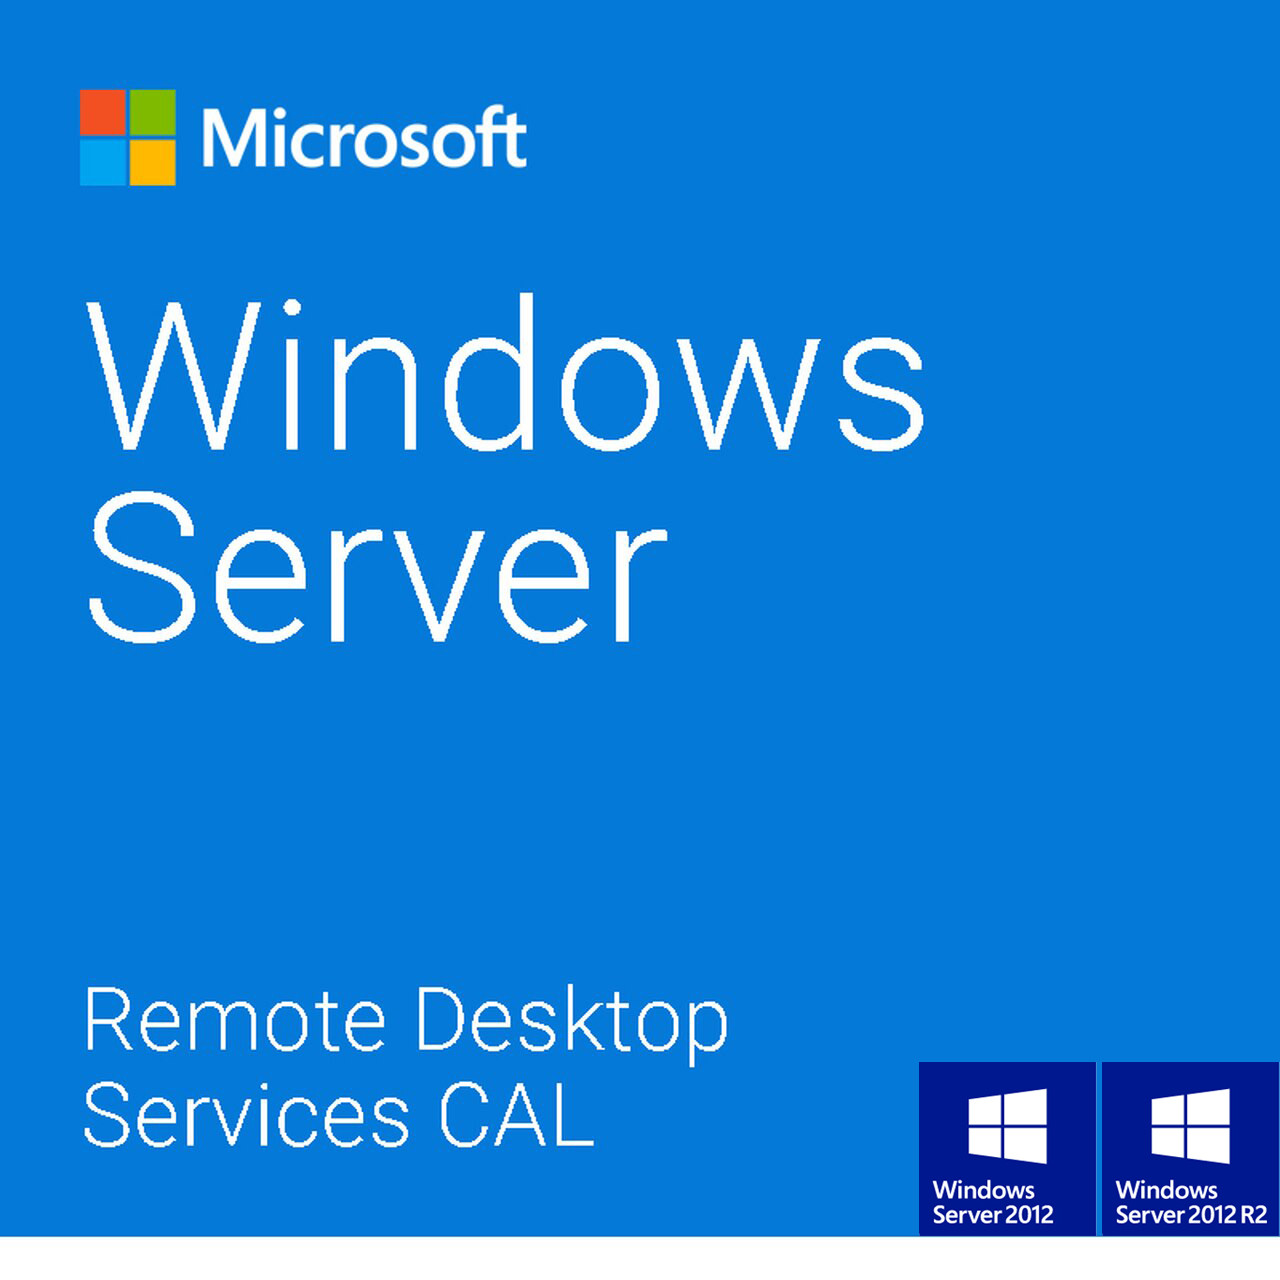 Windows Server 20122012 R2 Remote Desktop Services RDS 5 USER CAL License